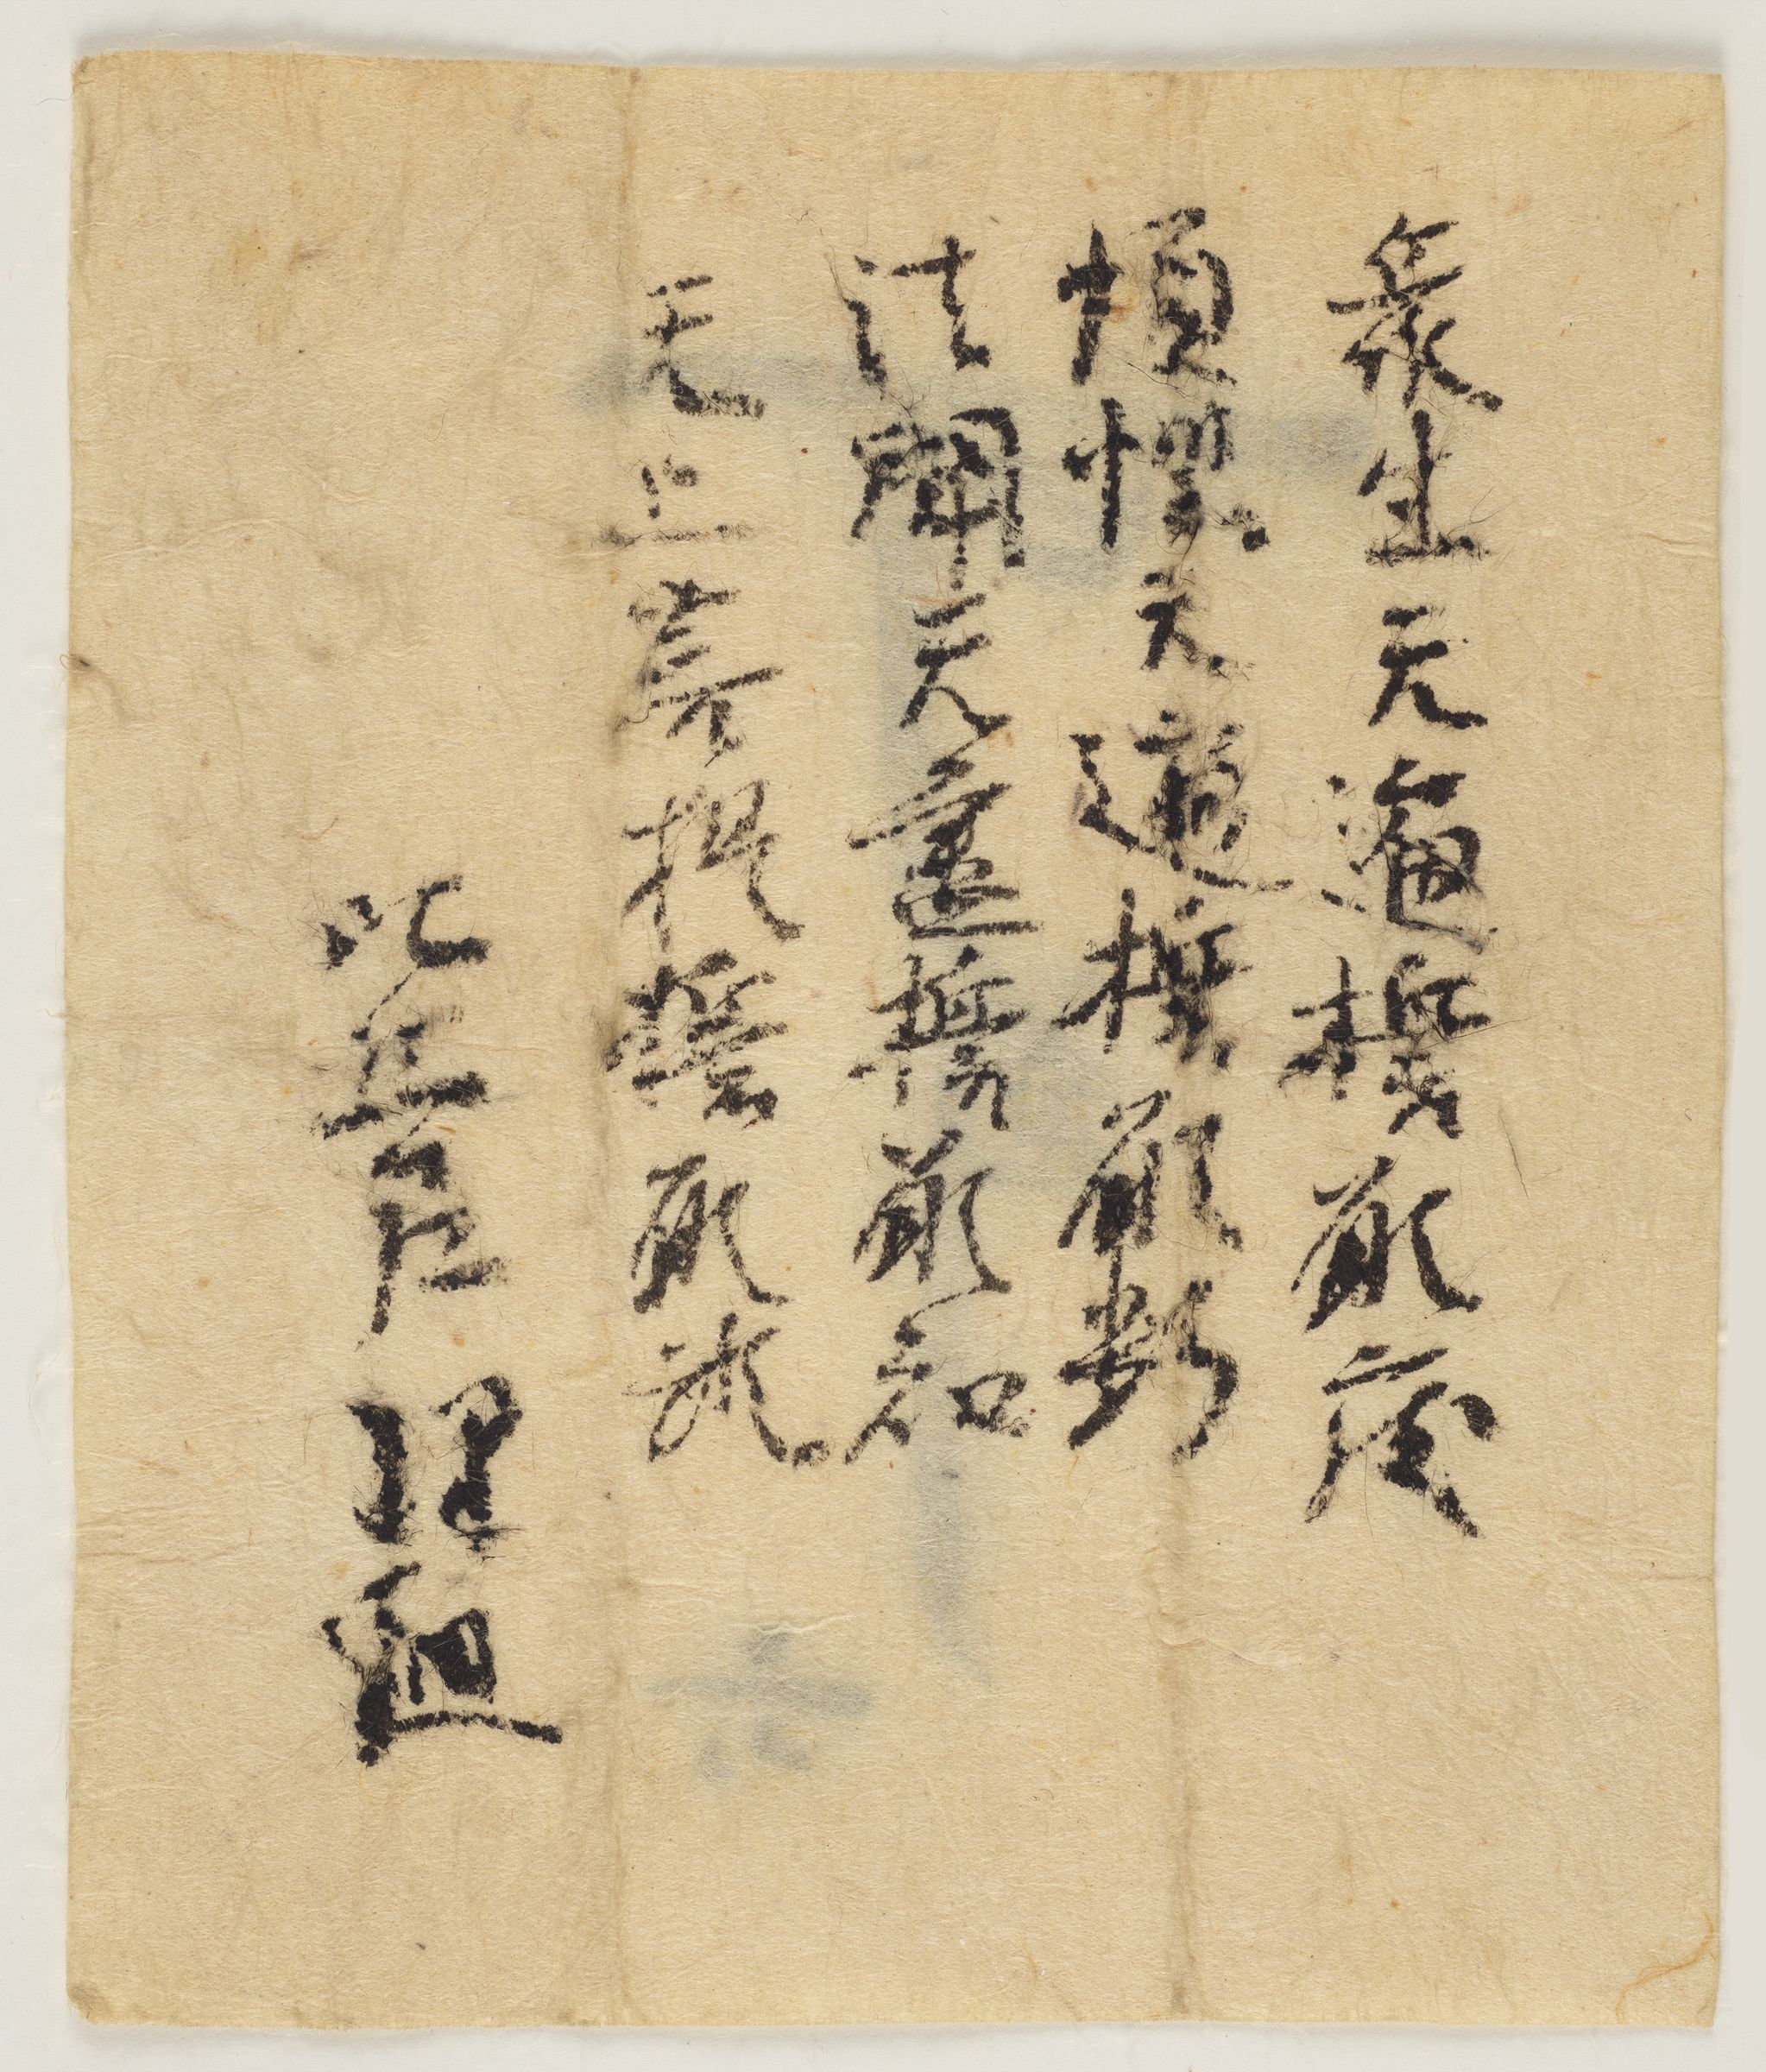 One Of Six Sheets Of Paper (Some Double-Sided) Inscribed With Religious Texts, Poems, Charms